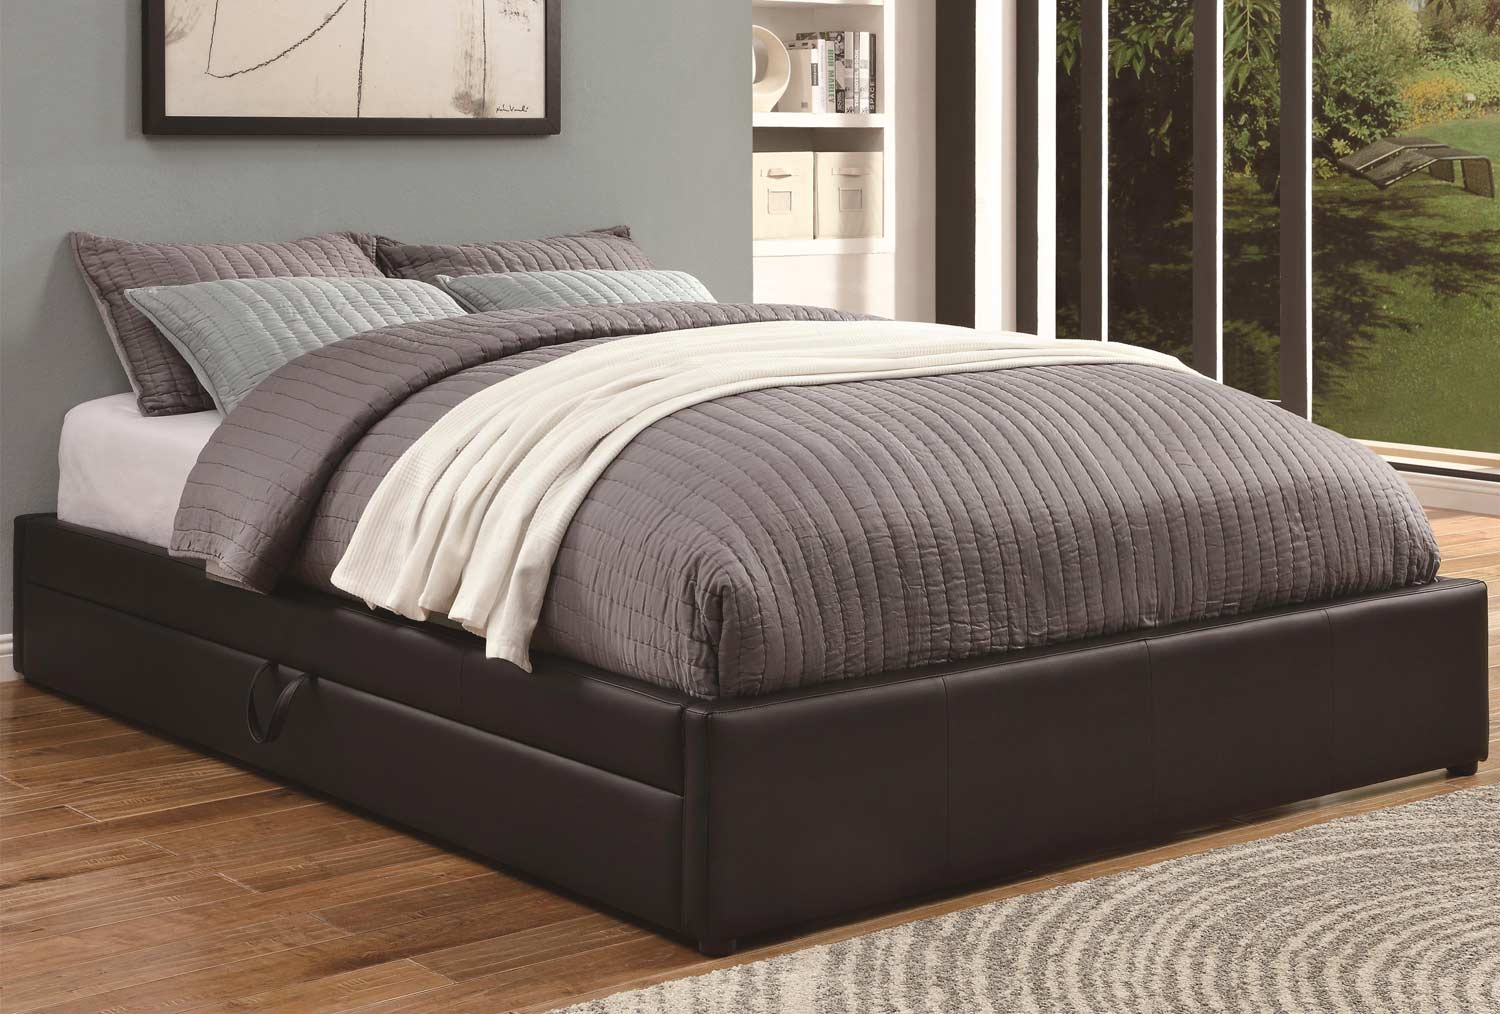 Coaster Upholstered Queen Bed with Storage - Black